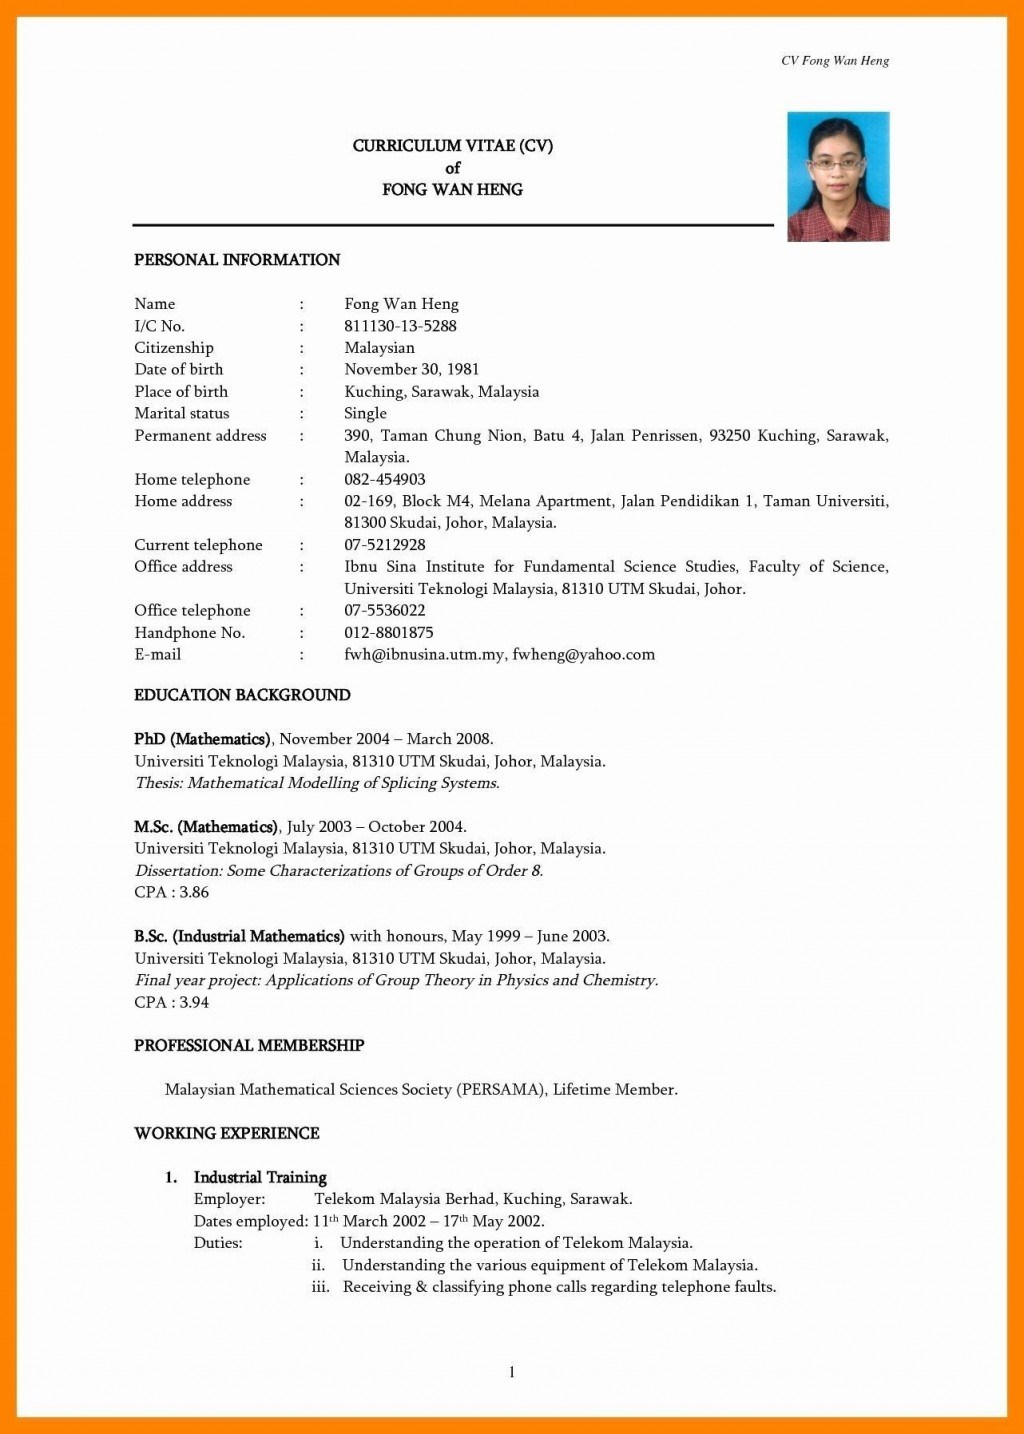 003 Breathtaking Free Basic Resume Template Download Idea  M Word Quora For Microsoft 2010Large